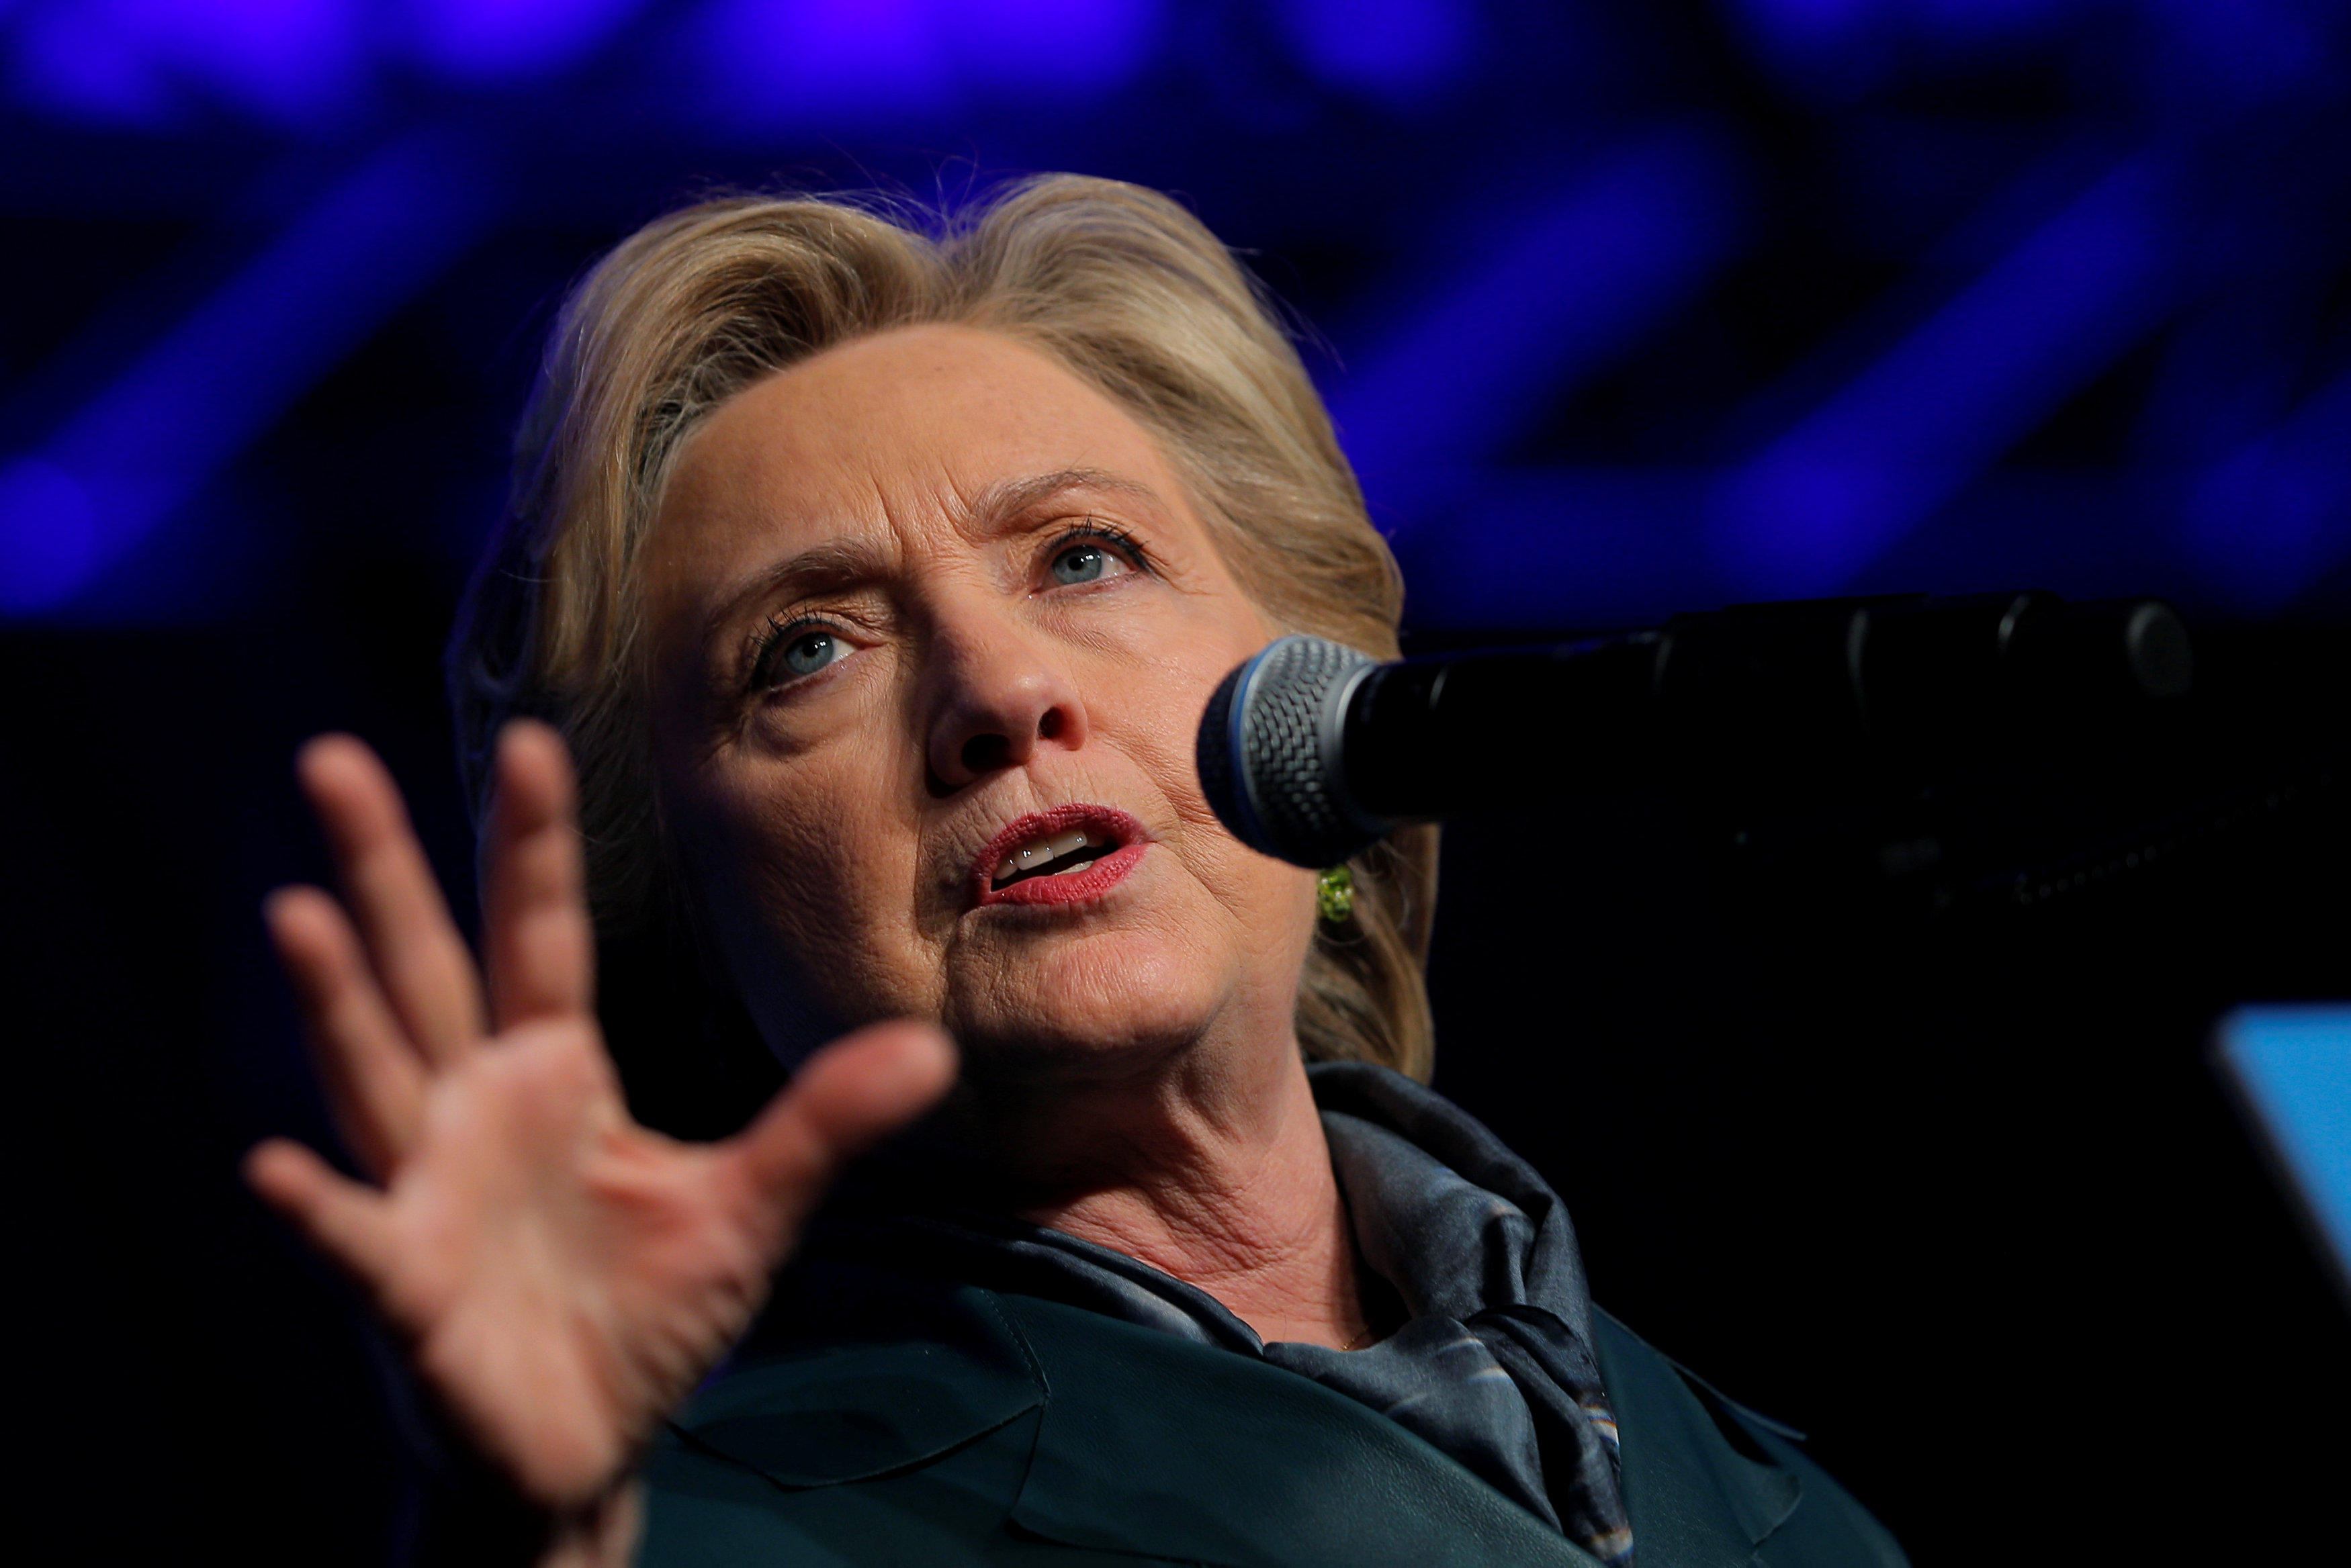 Hillary Clinton reemerging on national stage - CBS News Hillary Rodham Clinton